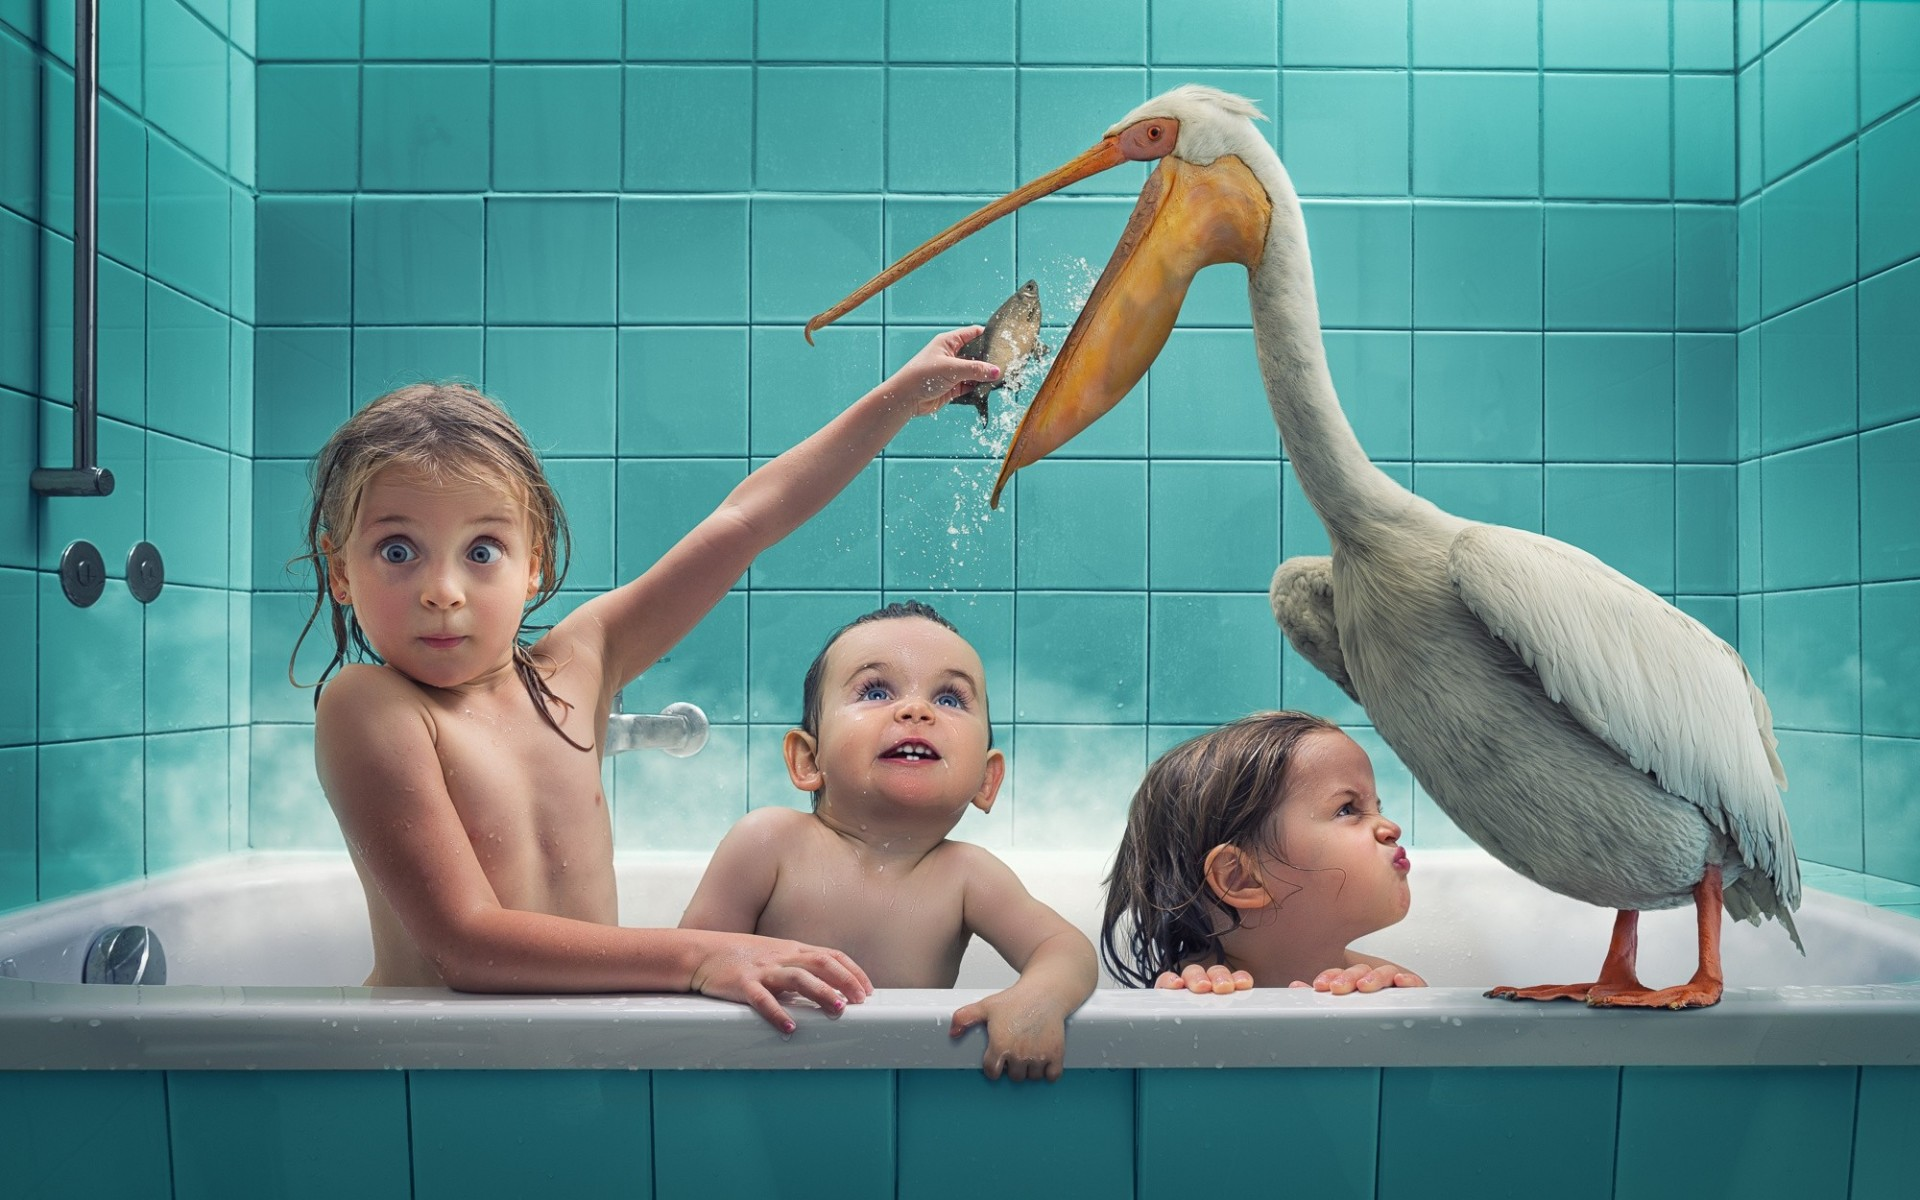 pelican boys children birds bath swimming situation fish girl